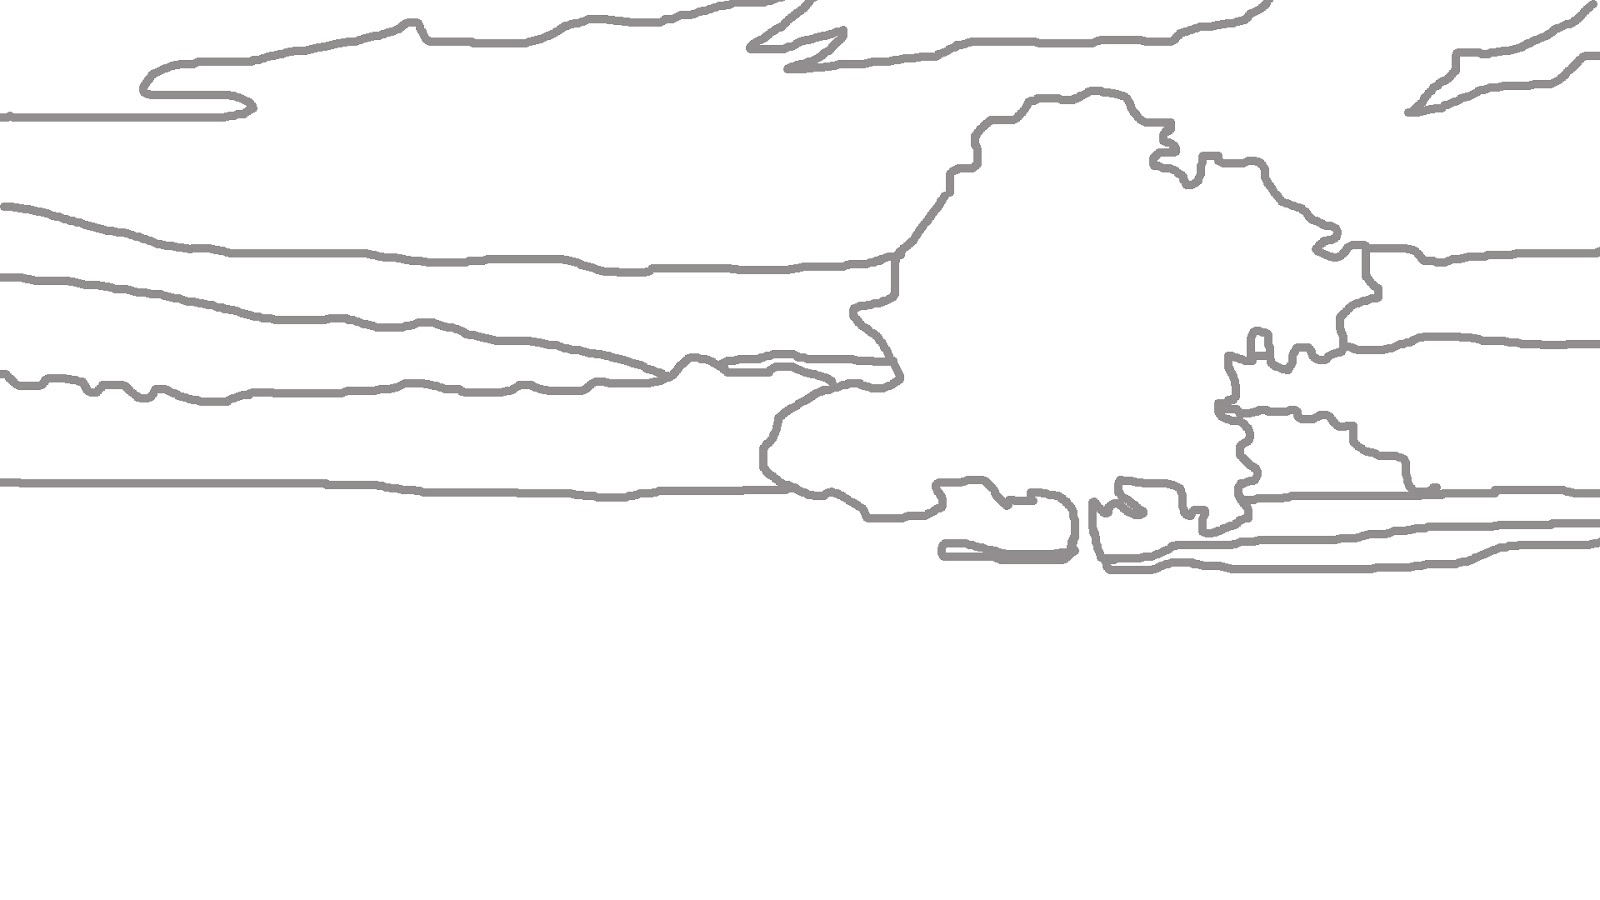 Line Drawing Landscape : Simple line drawing landscape imgkid the image